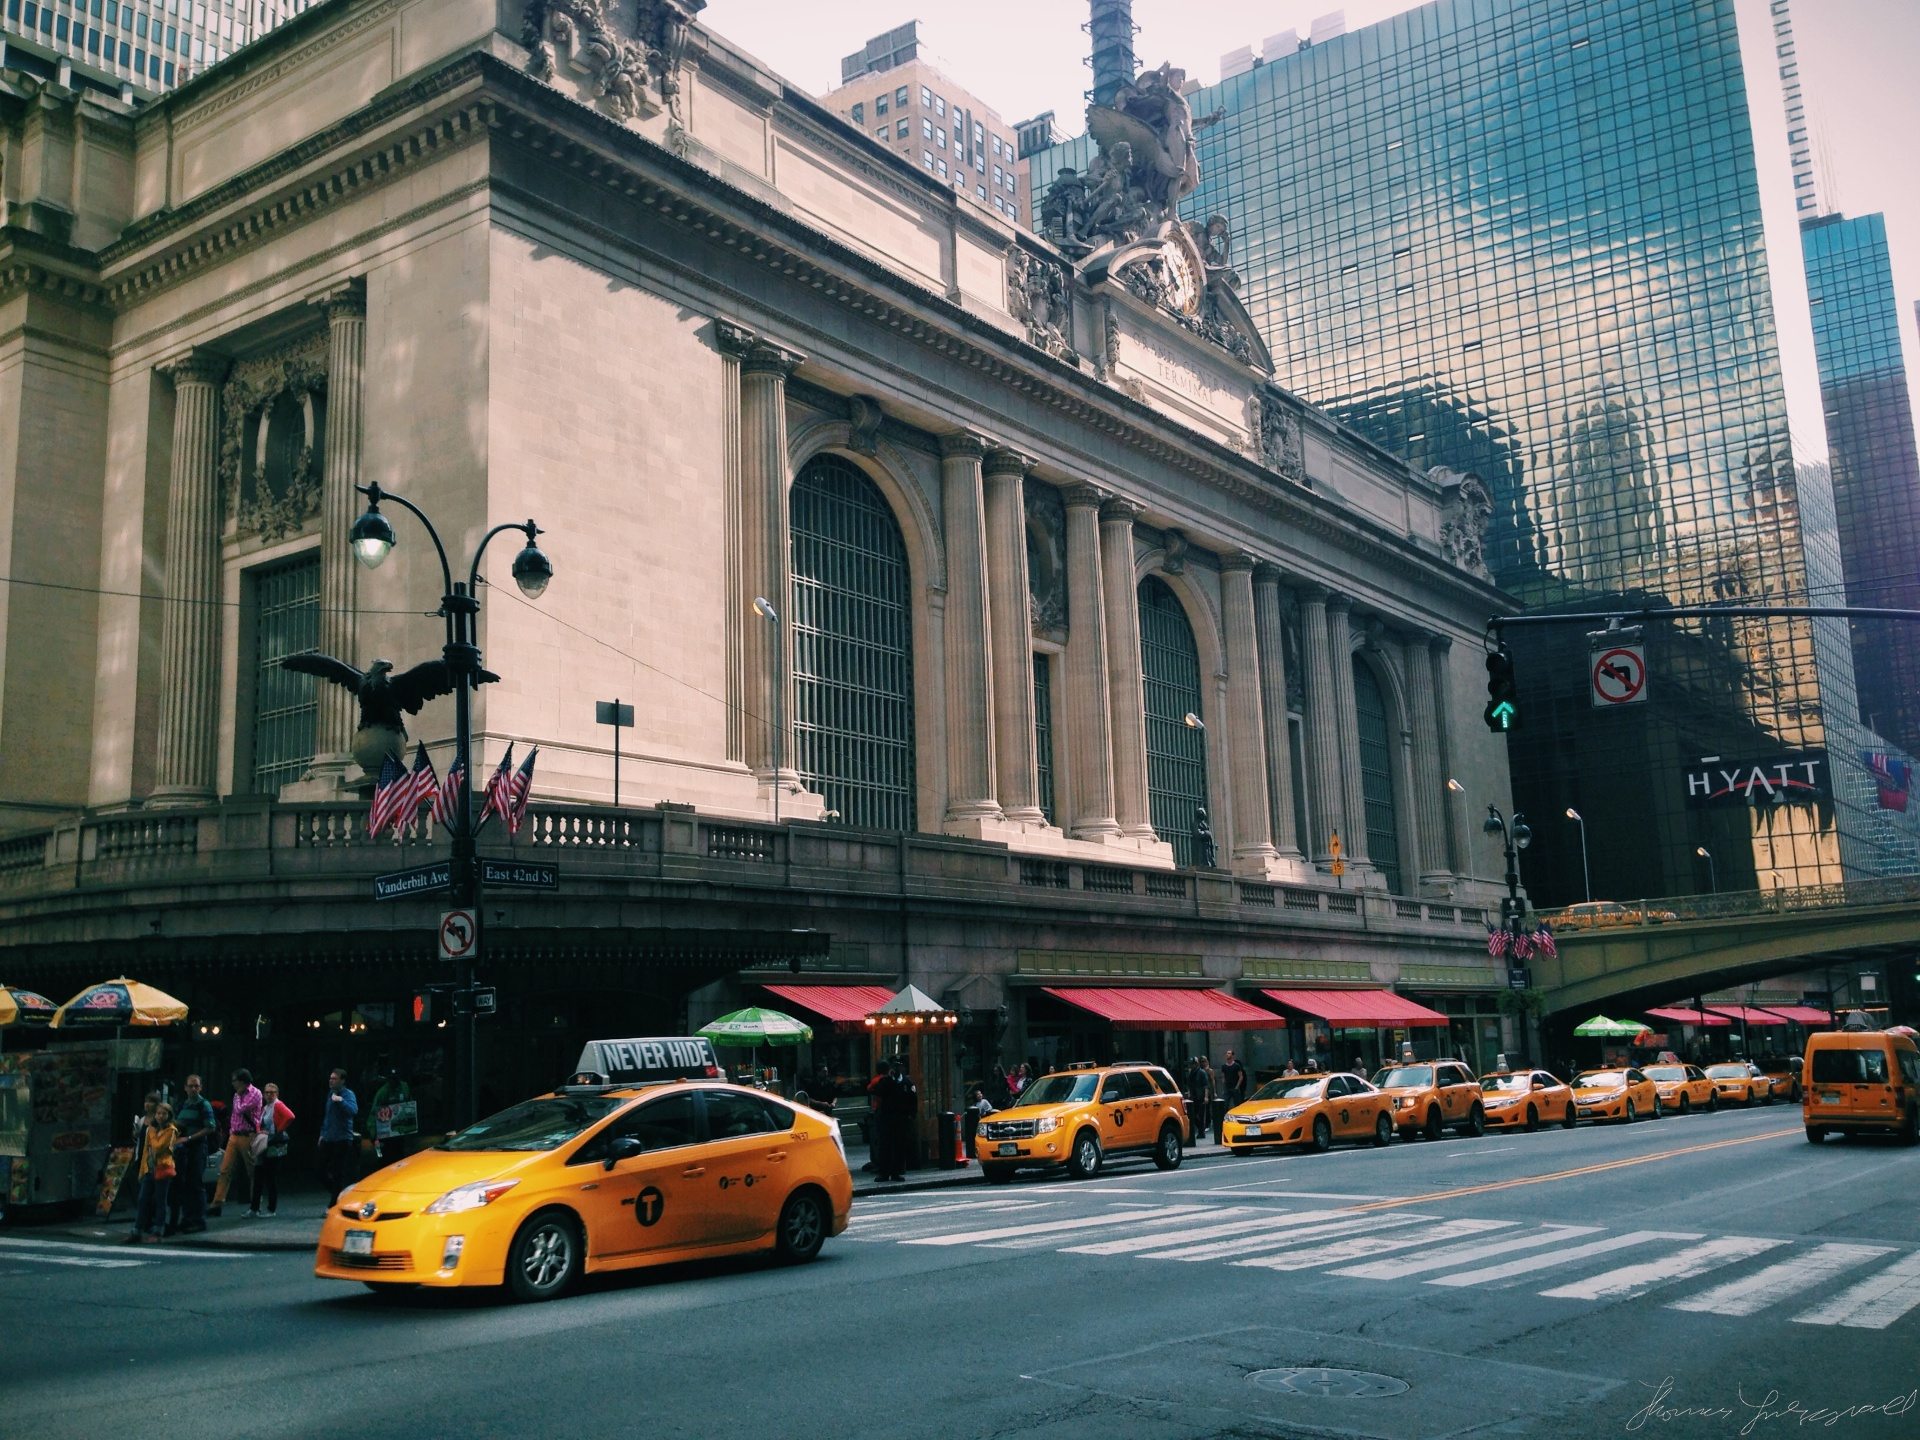 Taxis at Grand Central